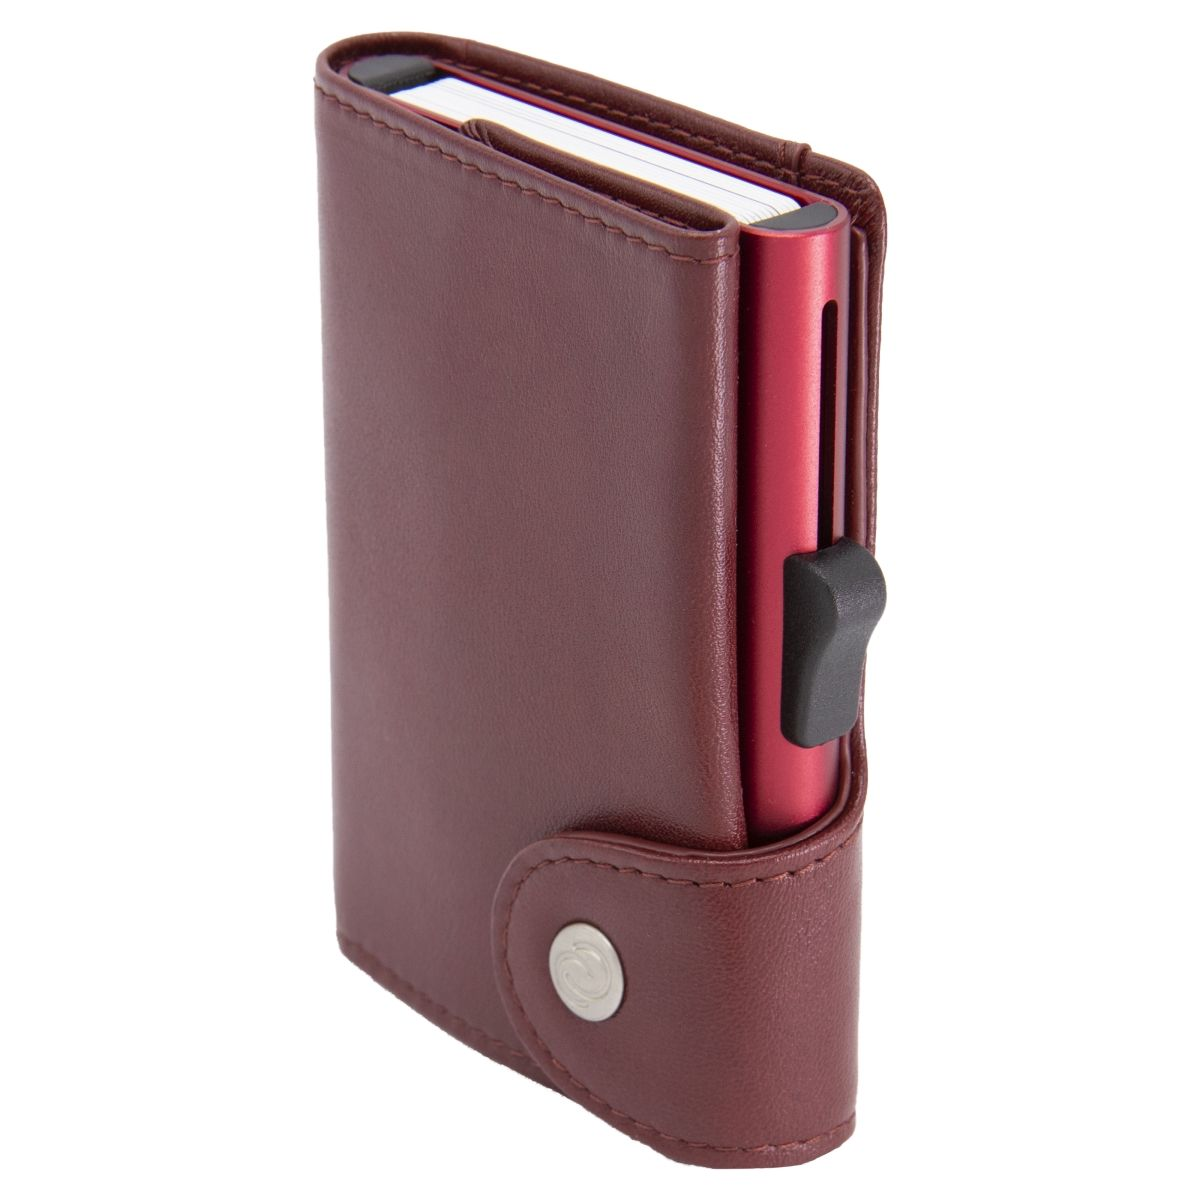 C-Secure XL Aluminum Wallet with Genuine Leather - Red